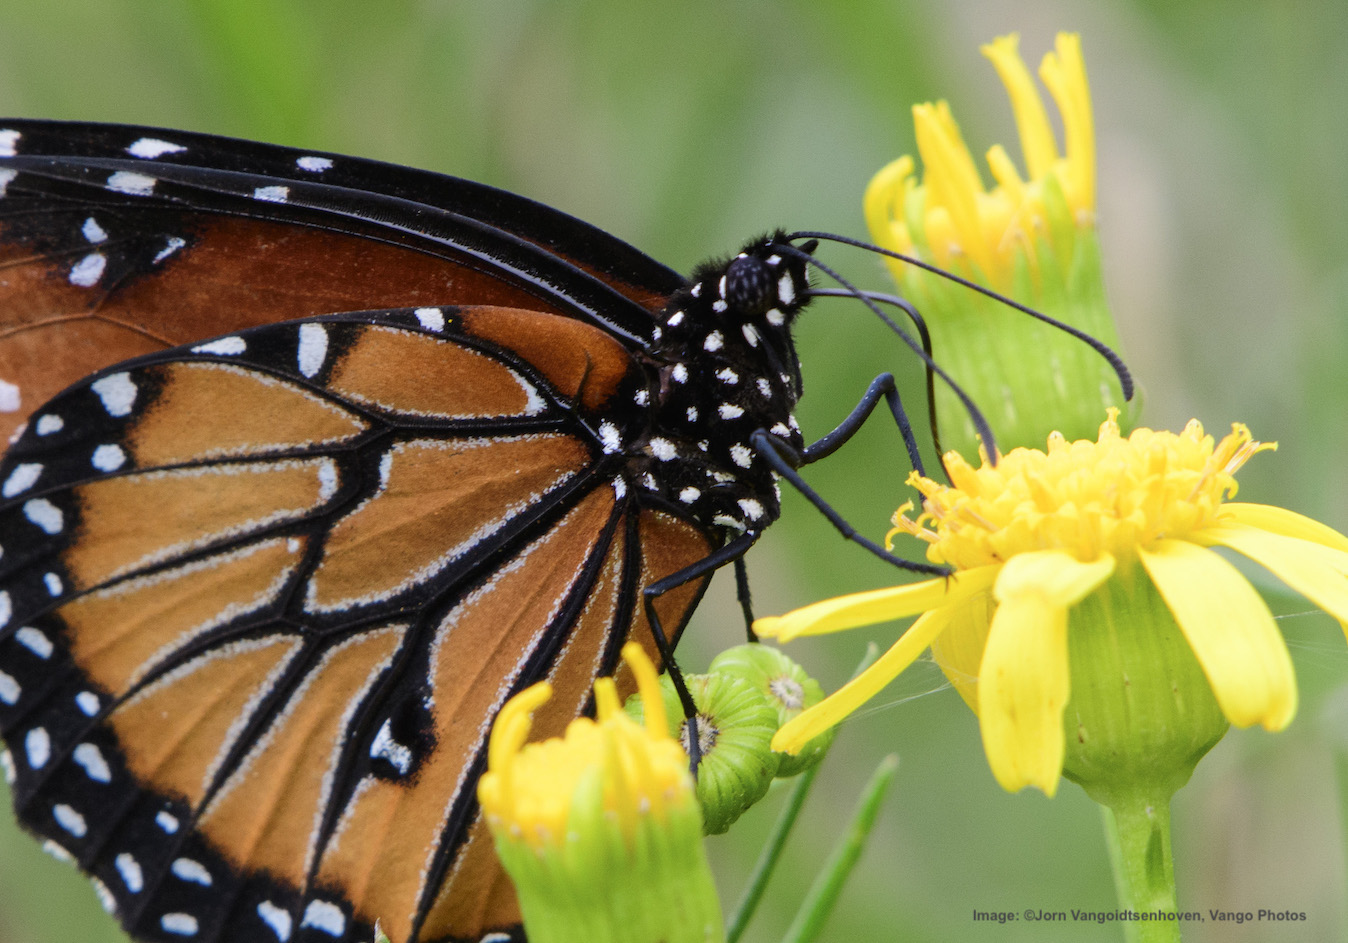 A MONARCH LOOK-ALIKE, QUEEN BUTTERFLY FEEDING. FOLLOWING THEIR FOOD SOURCE IS ONE REASON WHY THE BUTTERFLIES MIGRATE, BUT CAN THEY SURVIVE SHRINKING HABITAT AND THE AFFECTS OF CLIMATE CHANGE? Image: ©Jorn Vangoidtsenhoven, Vango Photos